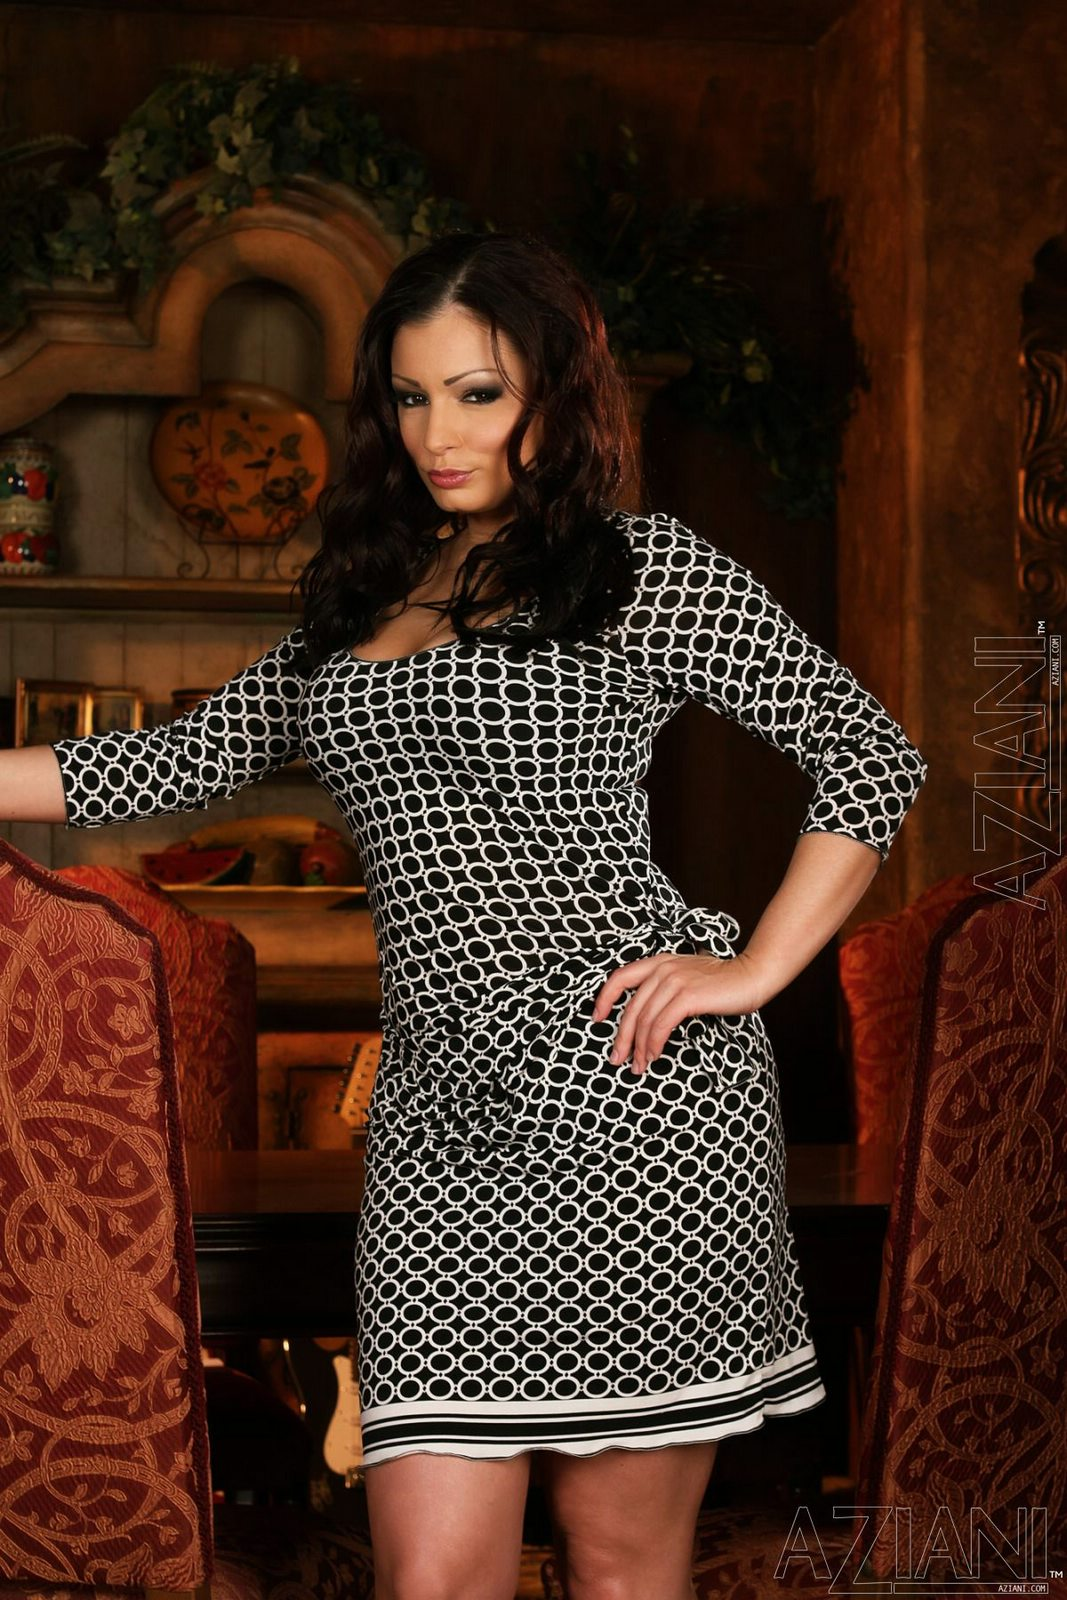 Aria Giovanni in sexy dress stripping and showing off her hot body - porn pics at My Pornstar Book